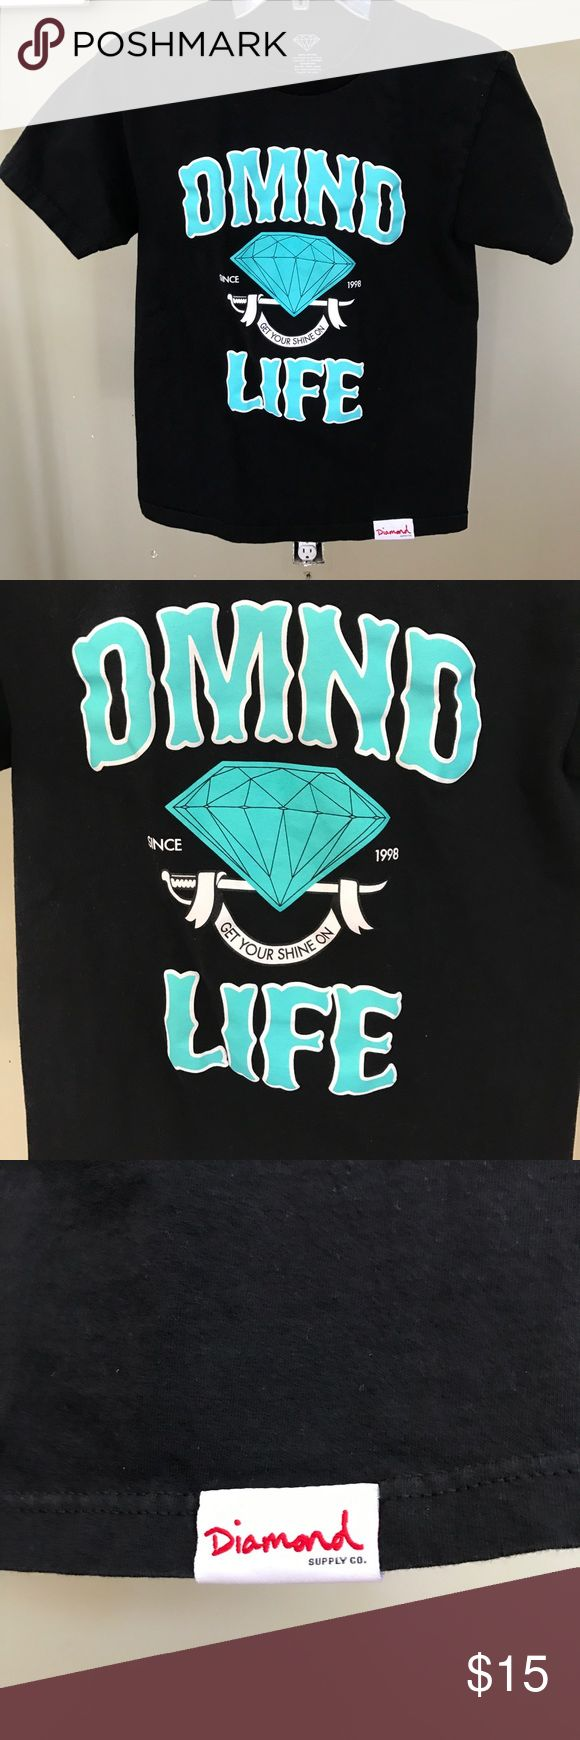 Diamond Men's Graphic Tee Shirt Worn once, in great condition. Men's Size Small but fits women too, looser fit. Diamond Supply Co. Shirts Tees - Short Sleeve